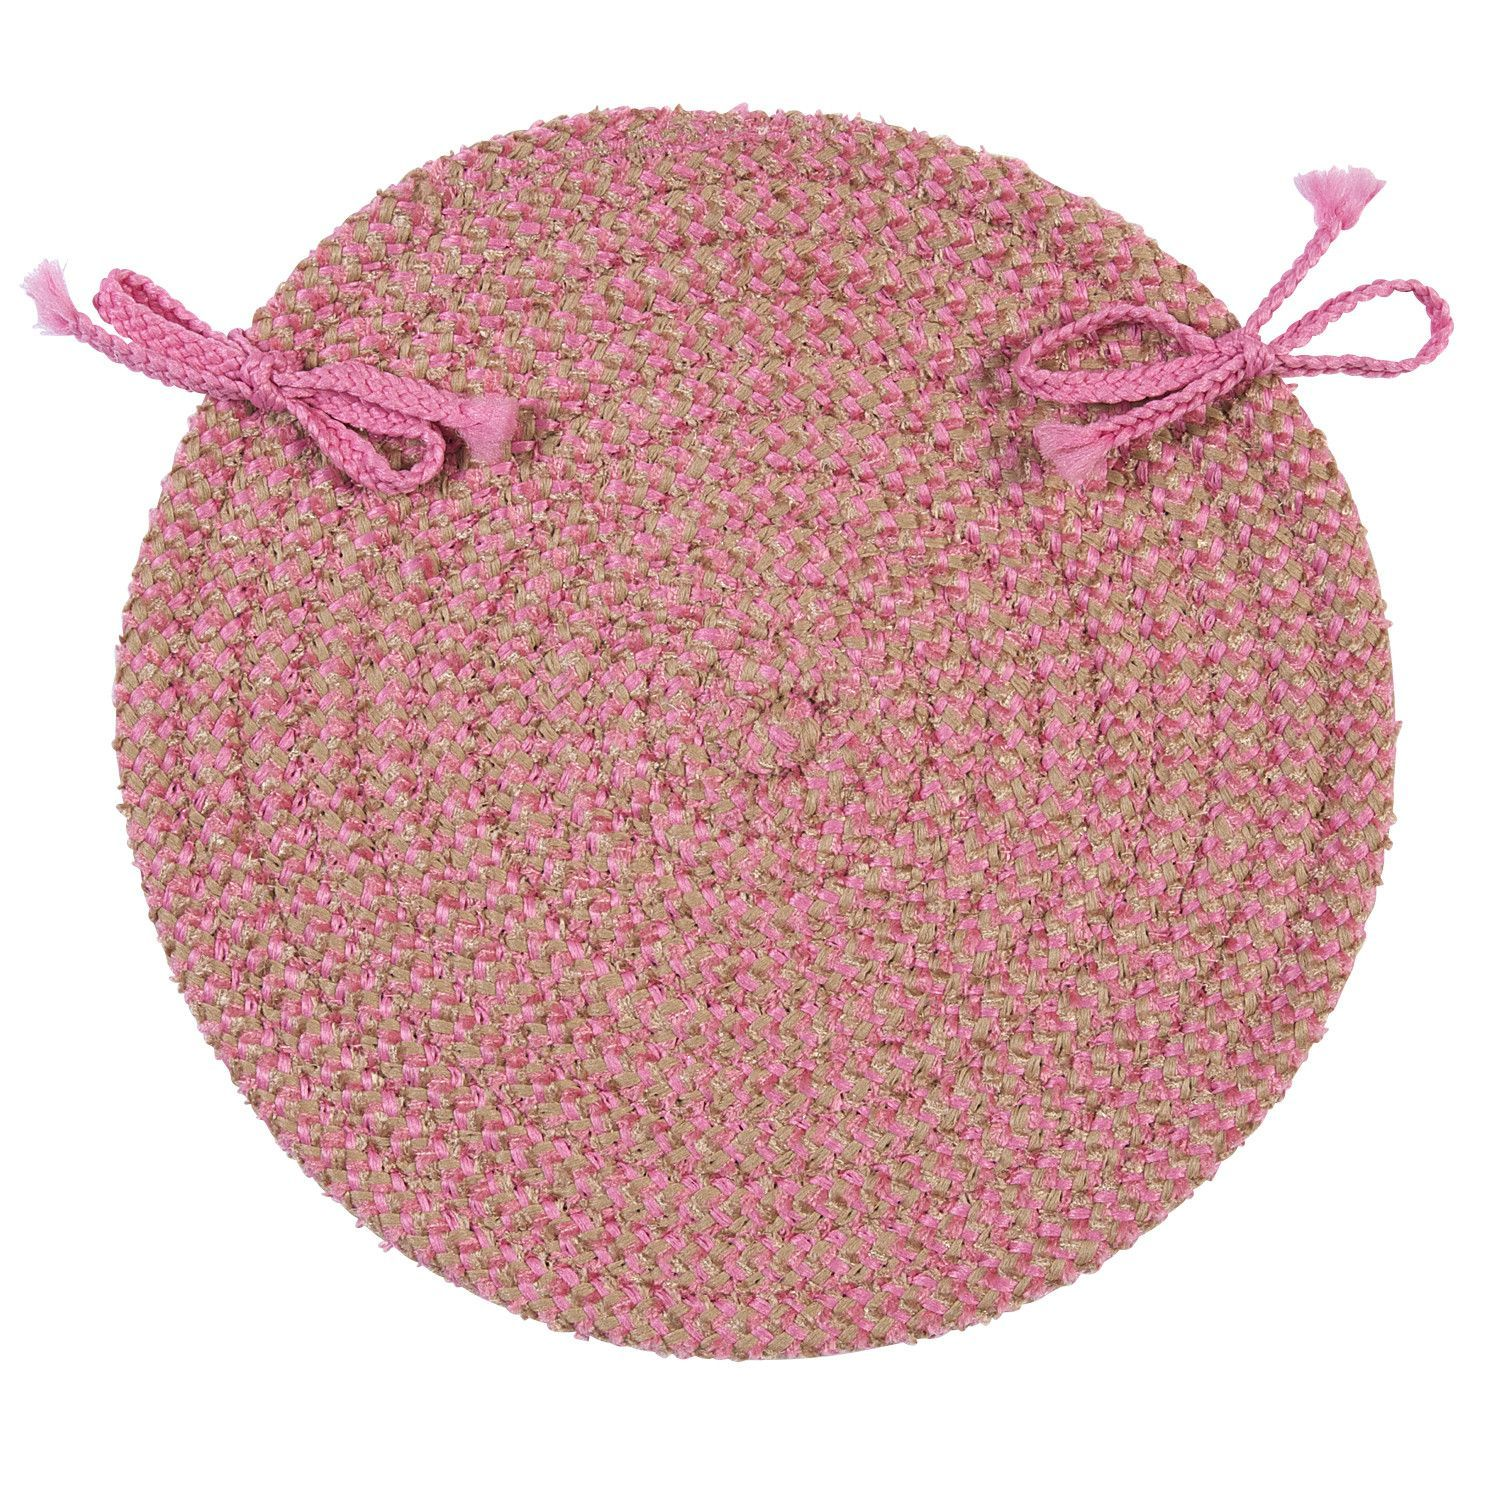 Superior Softex Check Indoor Outdoor Round Braided Chair Pad, Camerum Pink U0026 Tan